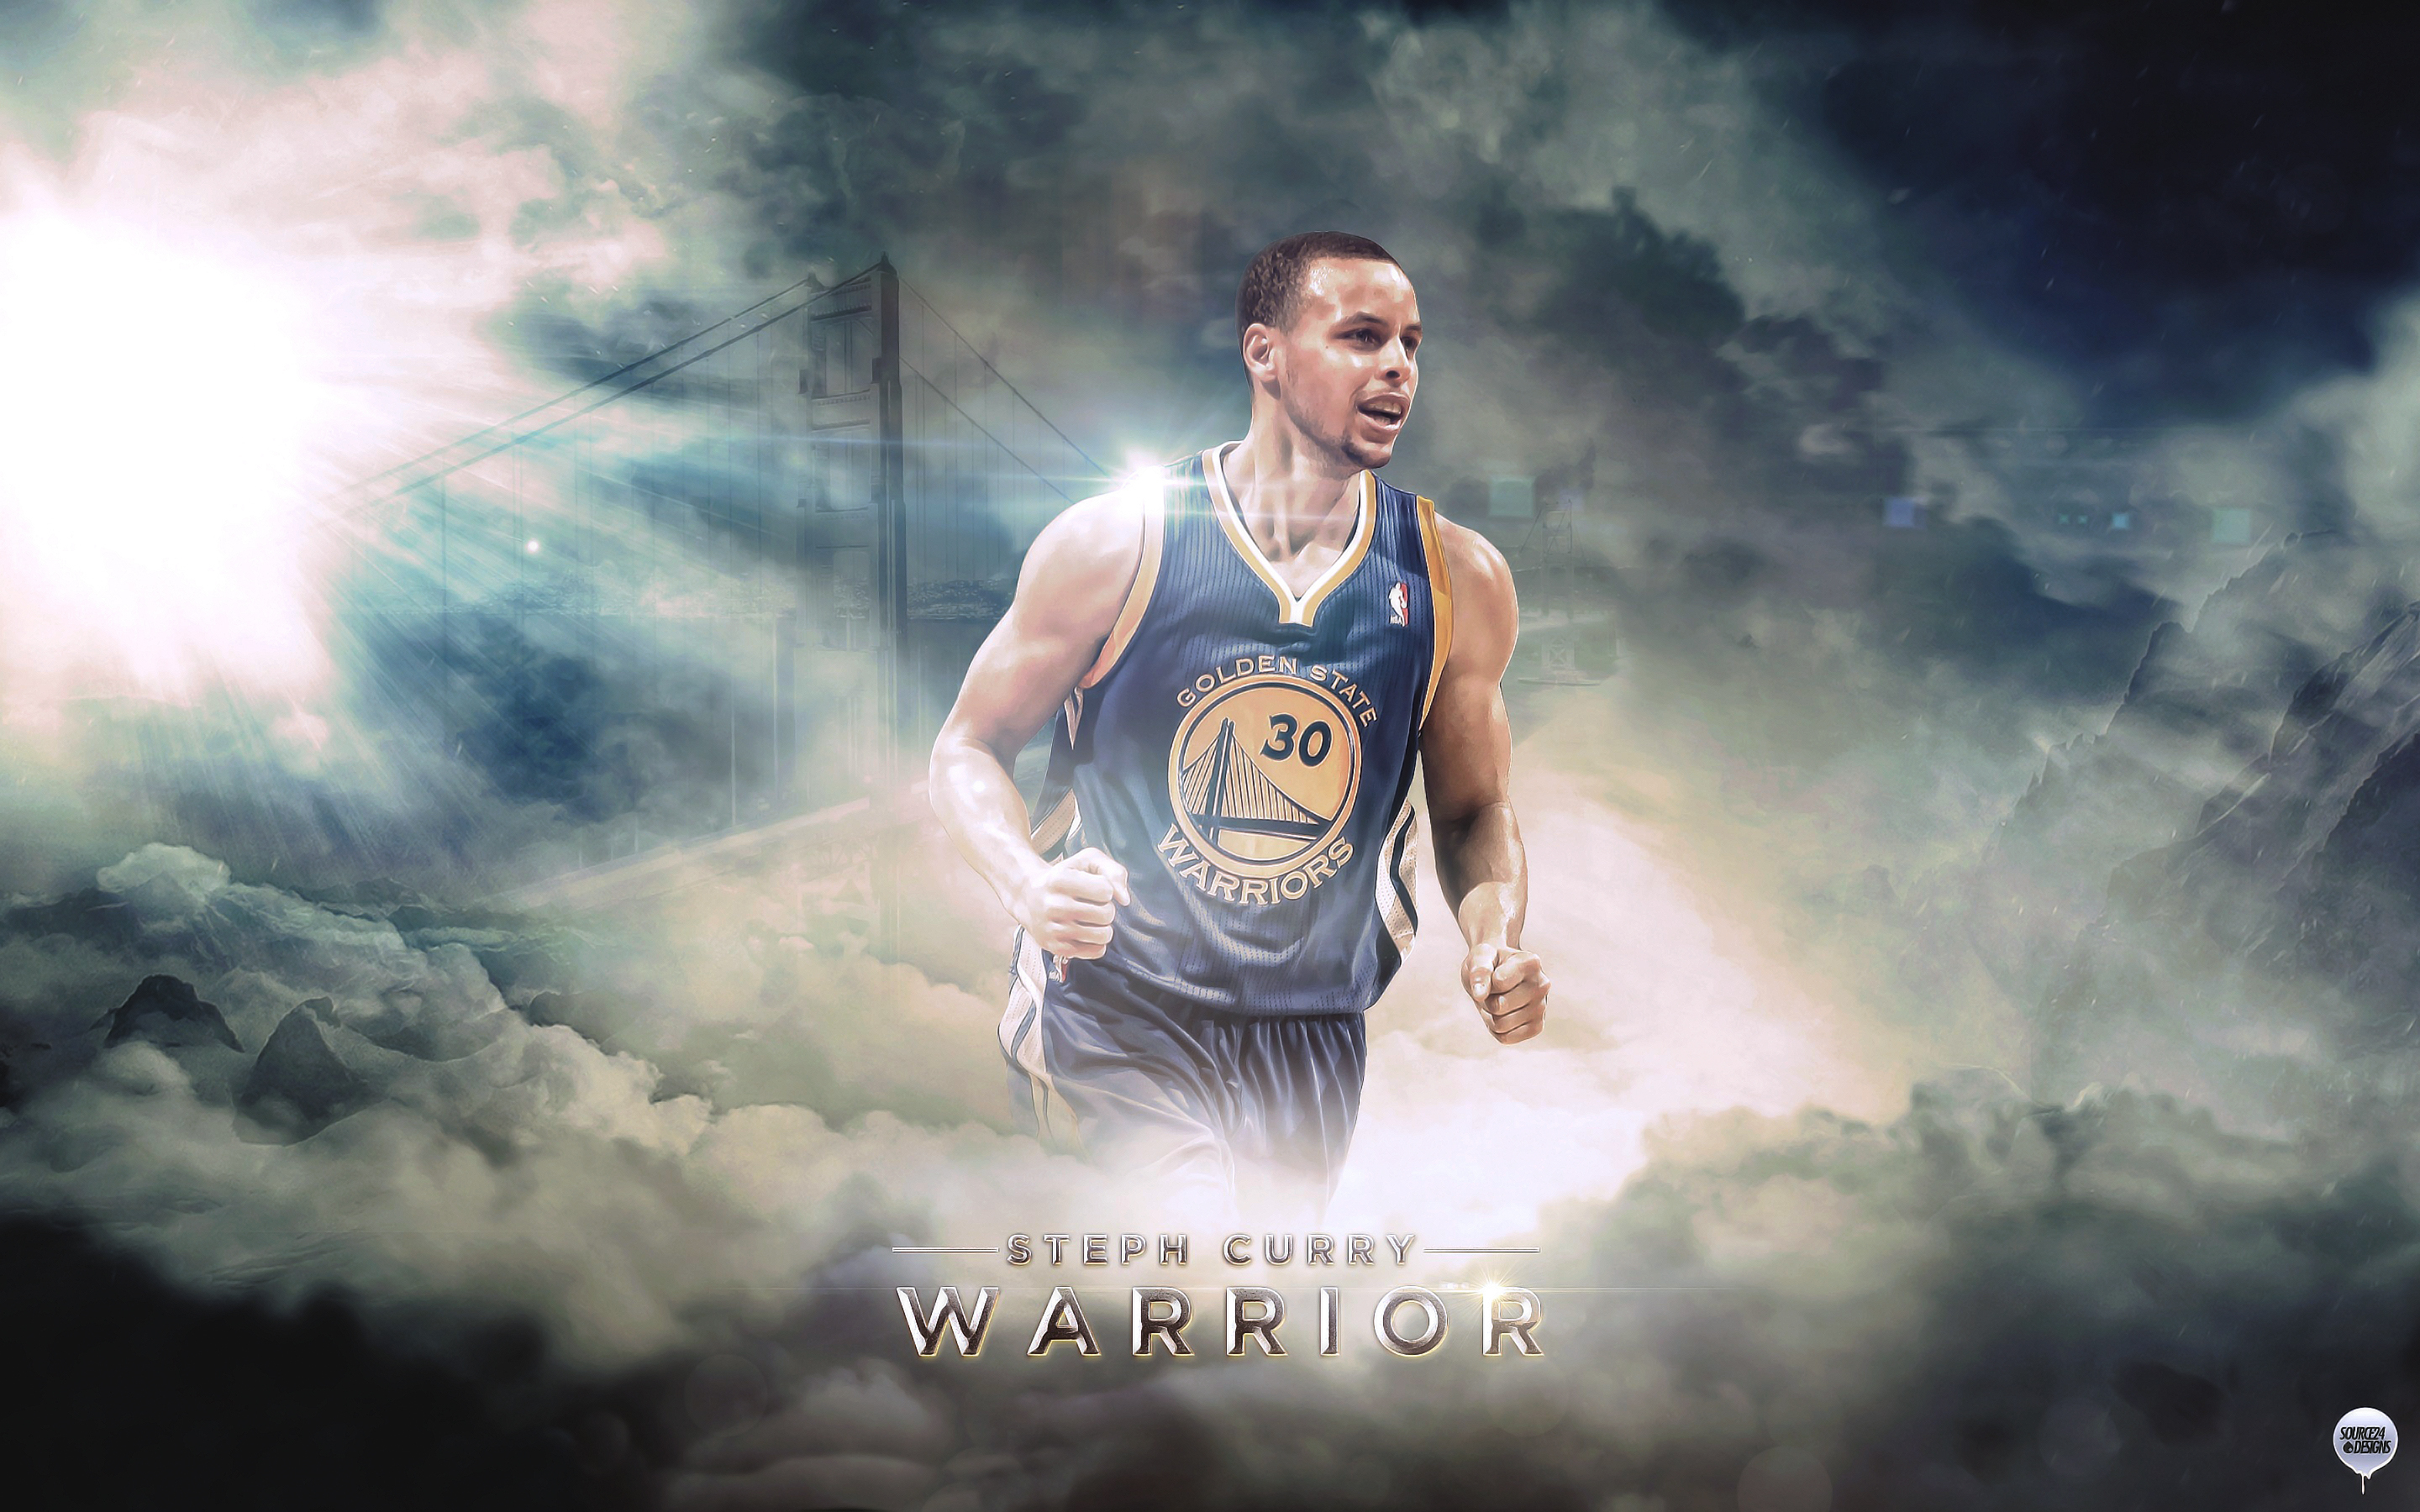 Stephen Curry State Warriors HD Computers Wallpaper cute Wallpapers 2880x1800